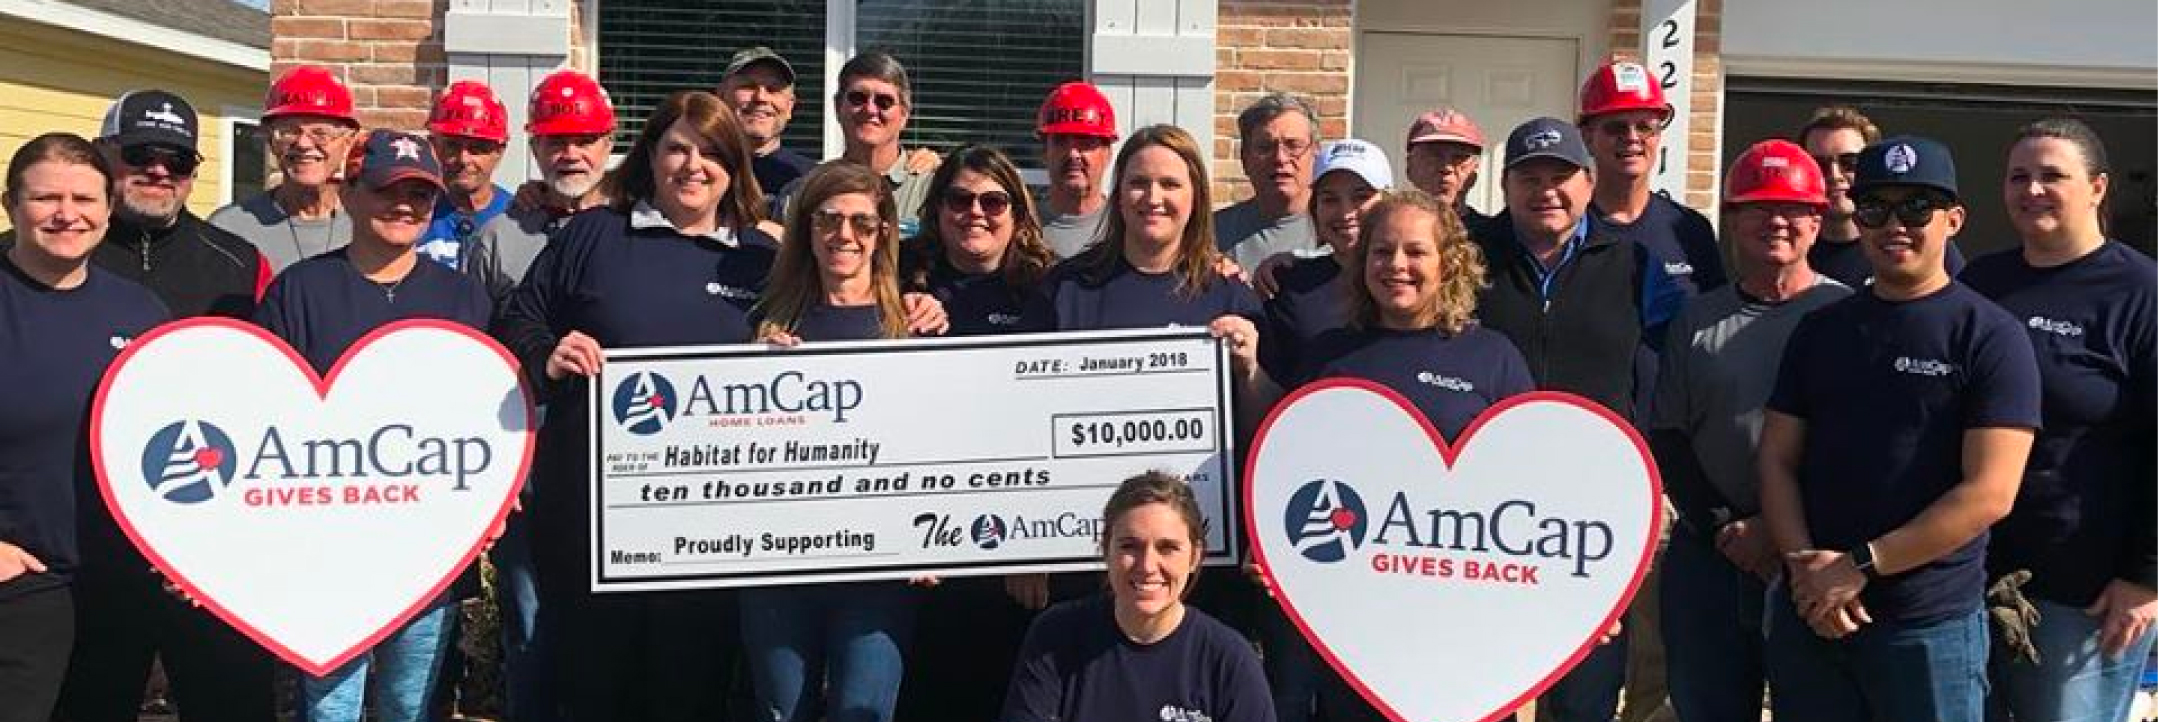 Habitat-For-Humanity-AmCap-Home-Loans-Volunteers